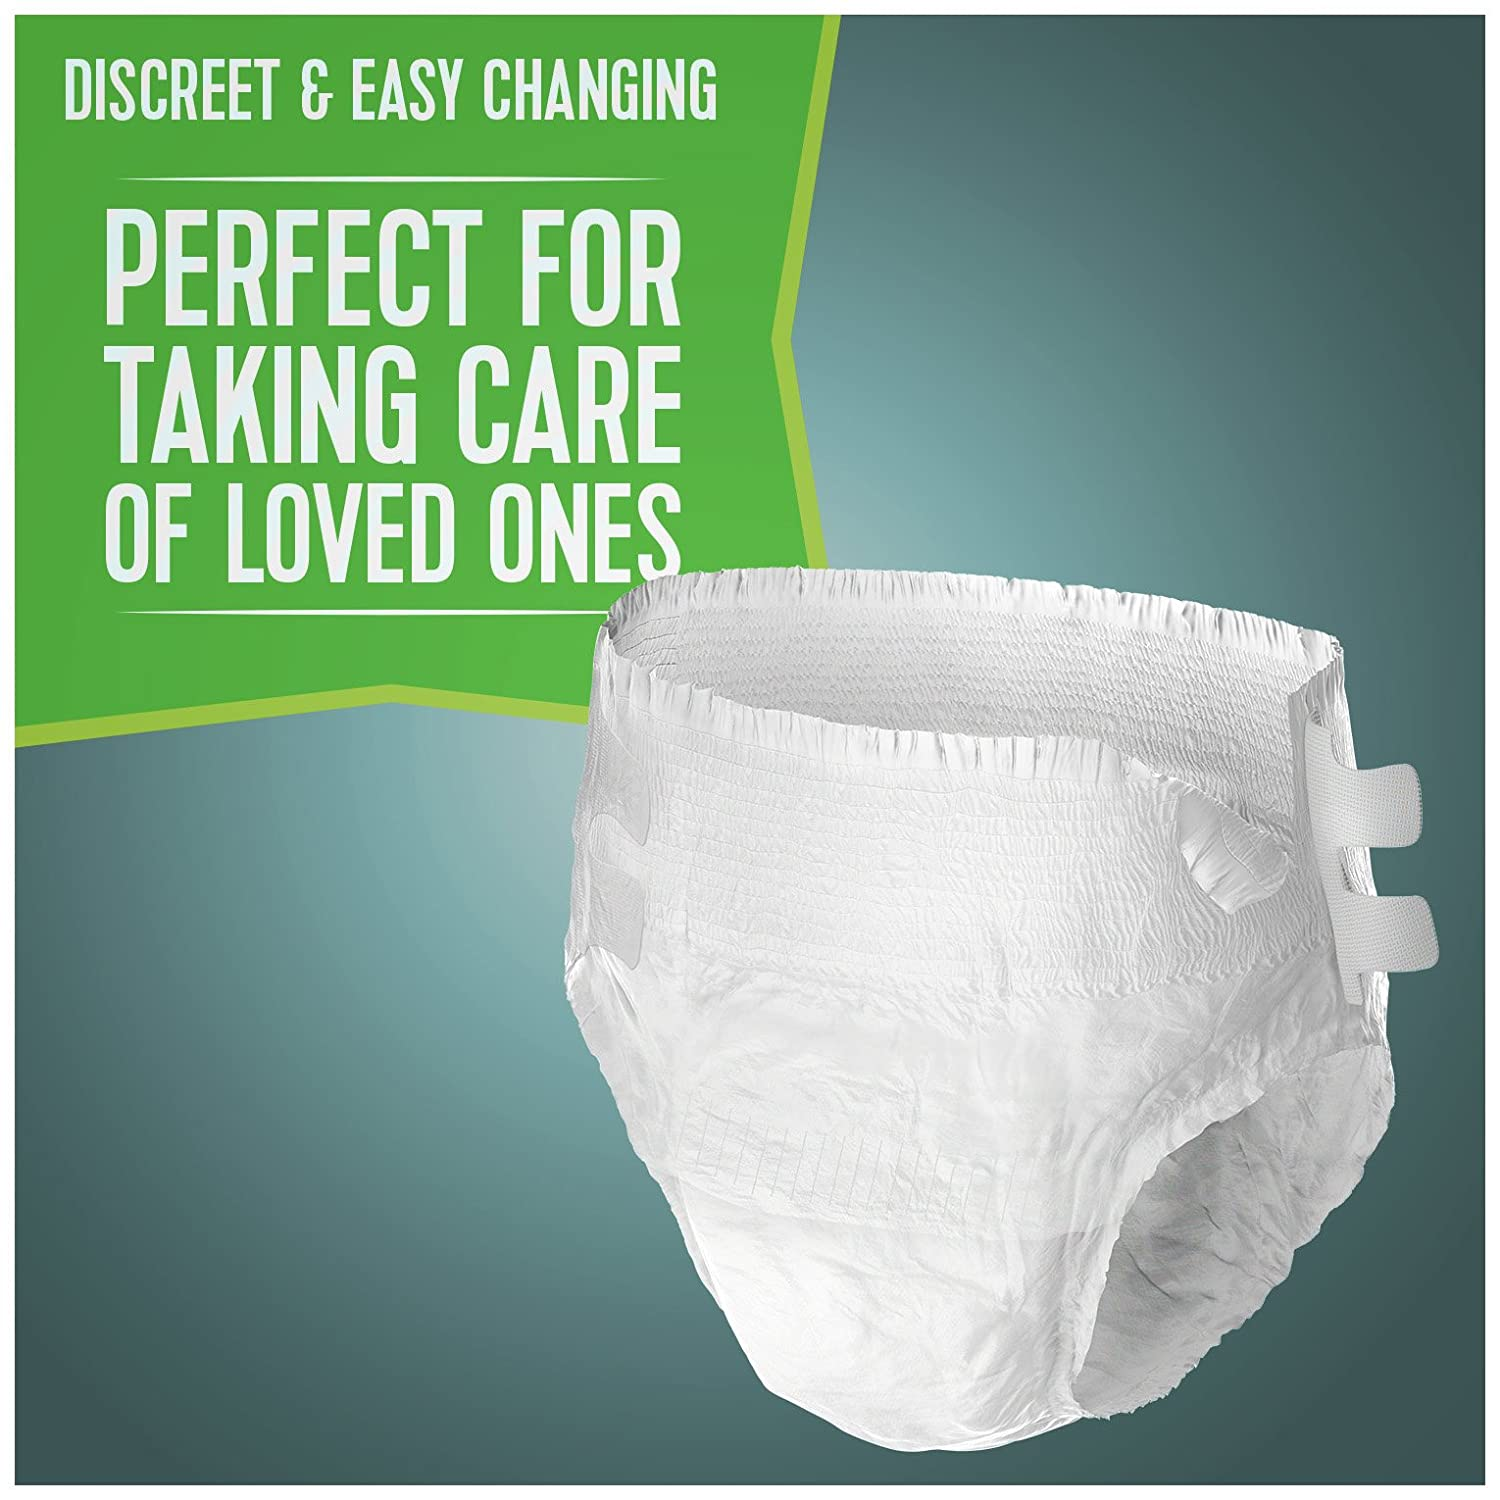 Amazon.com: Depend Adjustable Incontinence Underwear, Maximum Absorbency,  L/XL (Pack of 3): Health & Personal Care